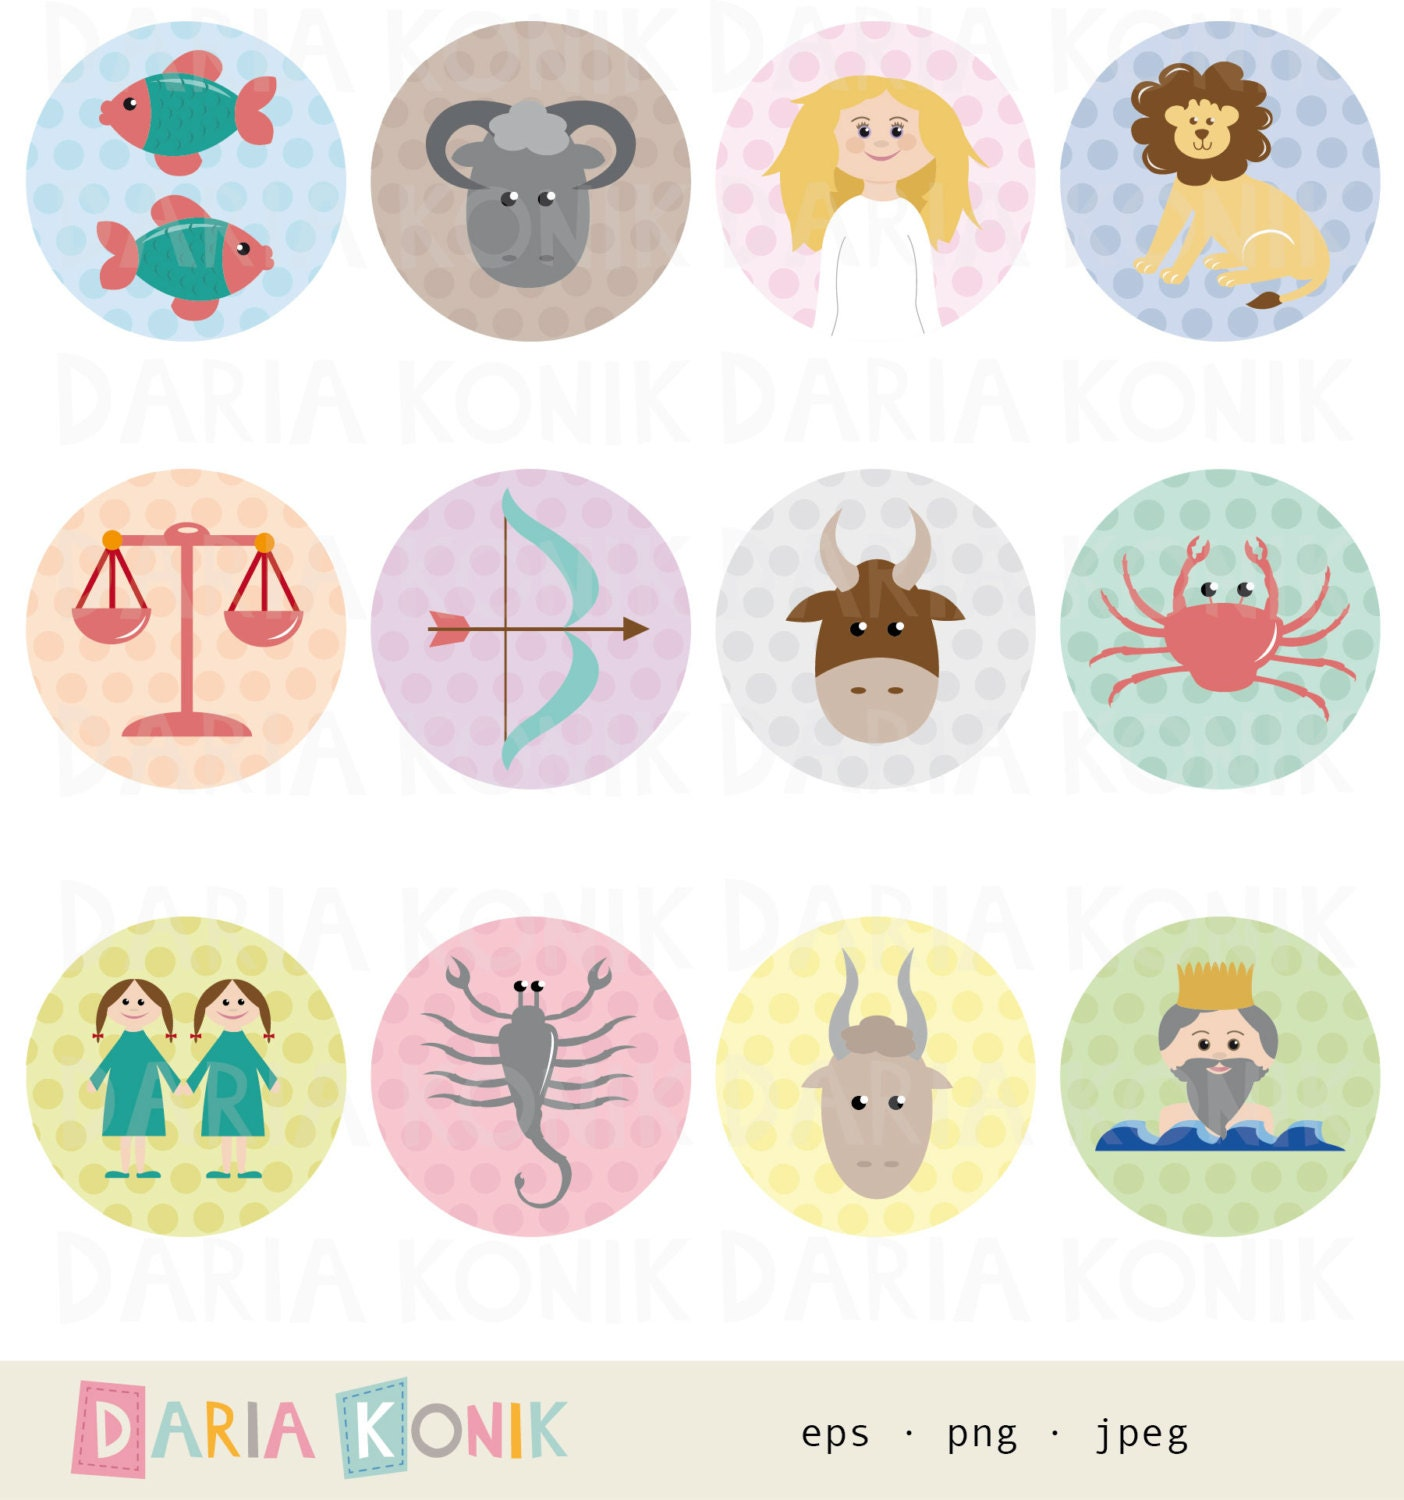 Zodiac Signs Clip Art Set-12 star signs icons astrological | Etsy